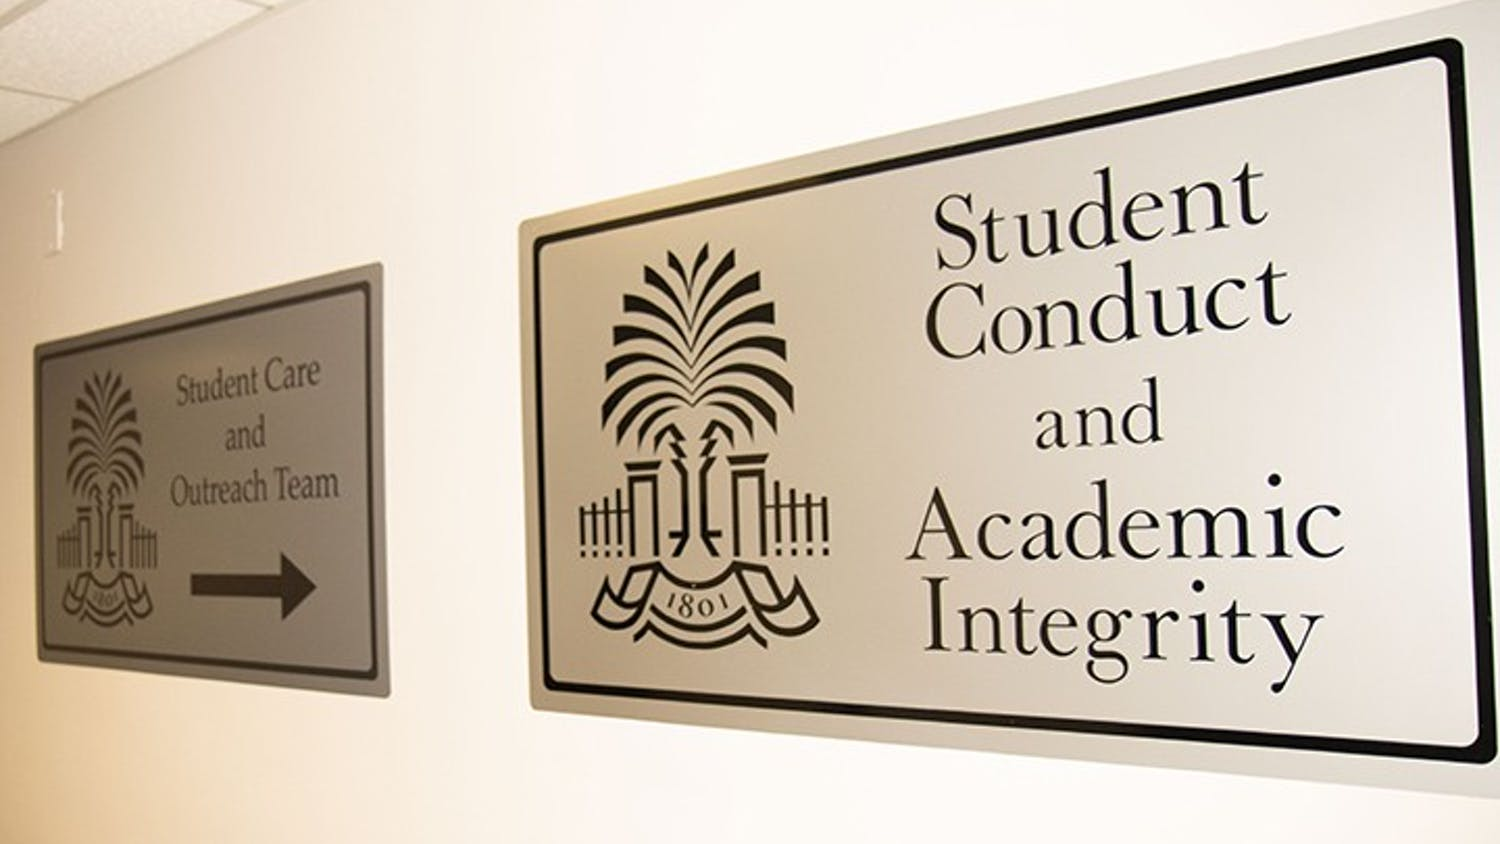 The sign outside of the Office of Student Conduct and Academic Integrity.